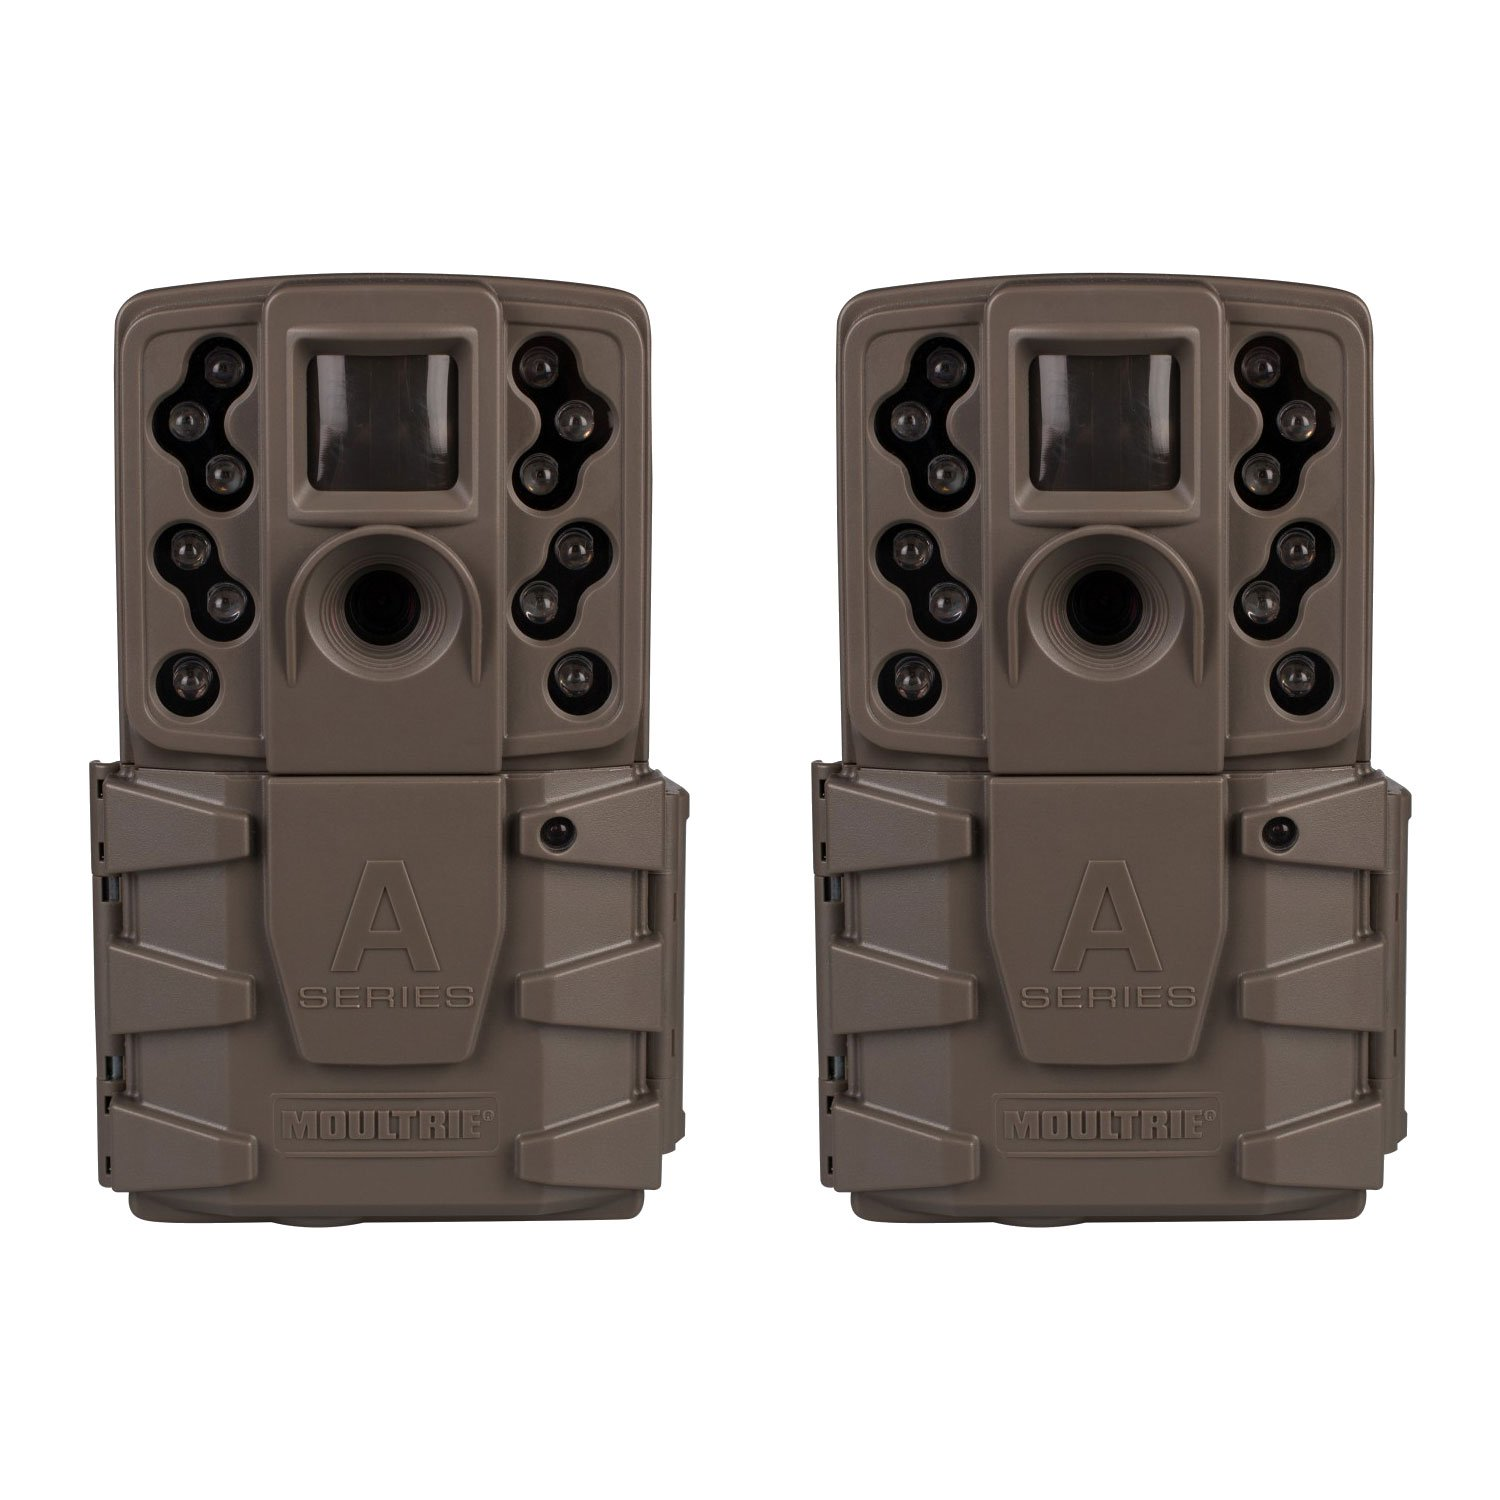 Moultrie A-25i 12MP Low Glow Scout Infrared Game Trail Camera, Brown (2 Pack)